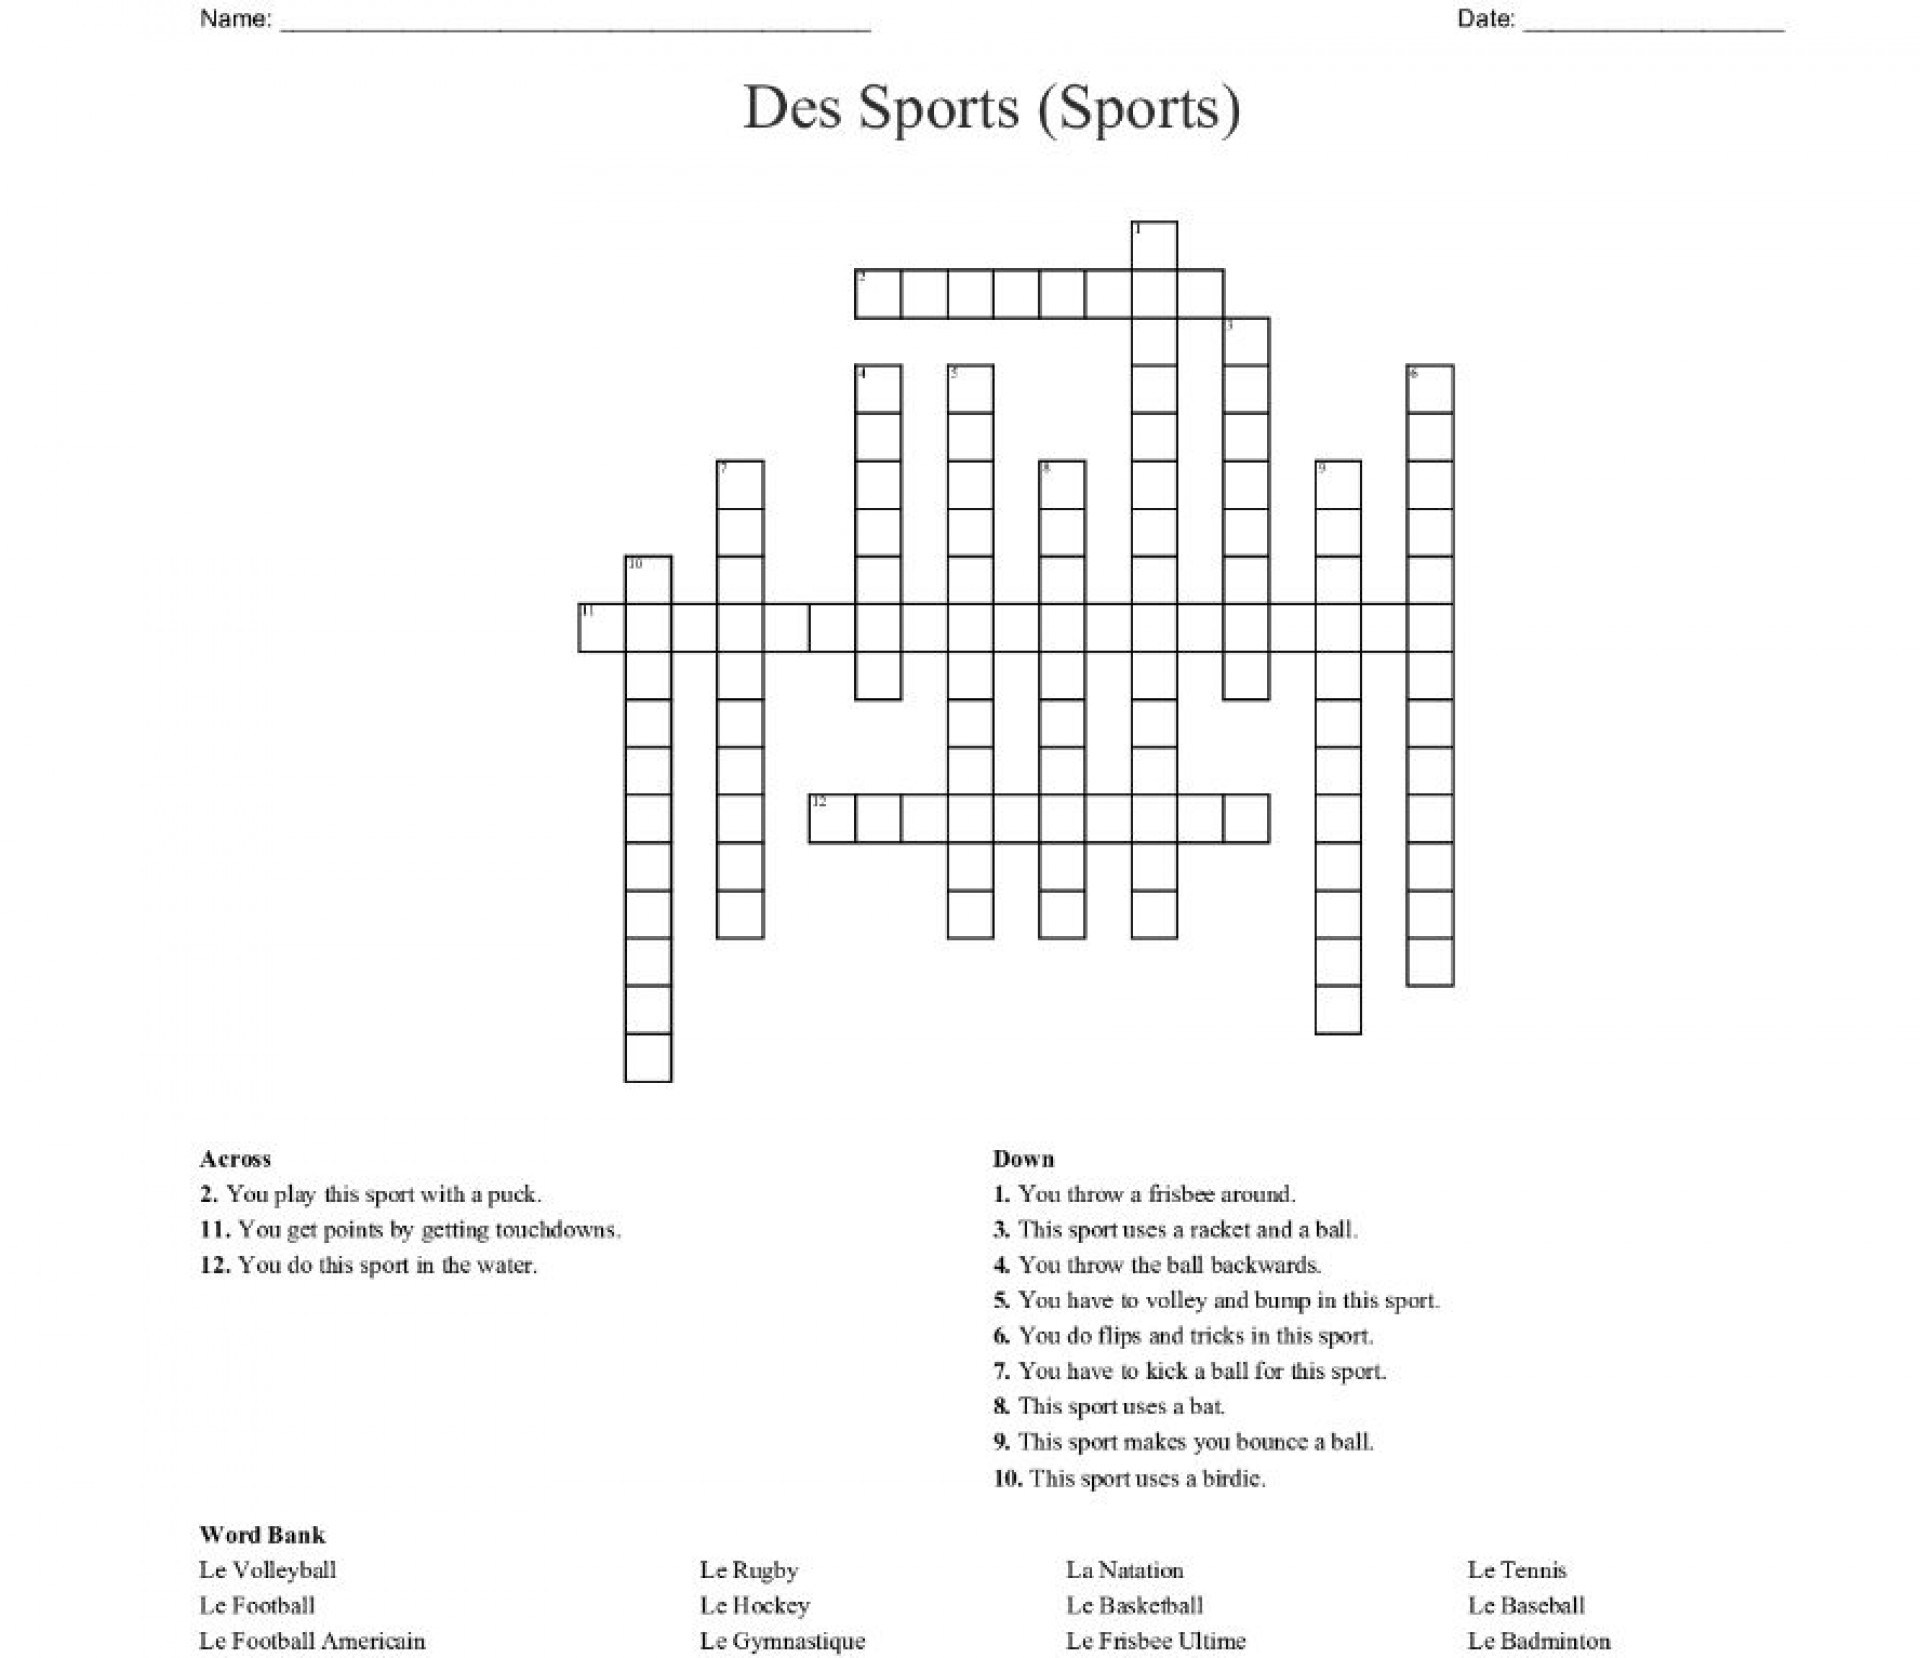 001 Wonderful Racket Crossword Clue Sample  5 Letter Nyt Awful1920